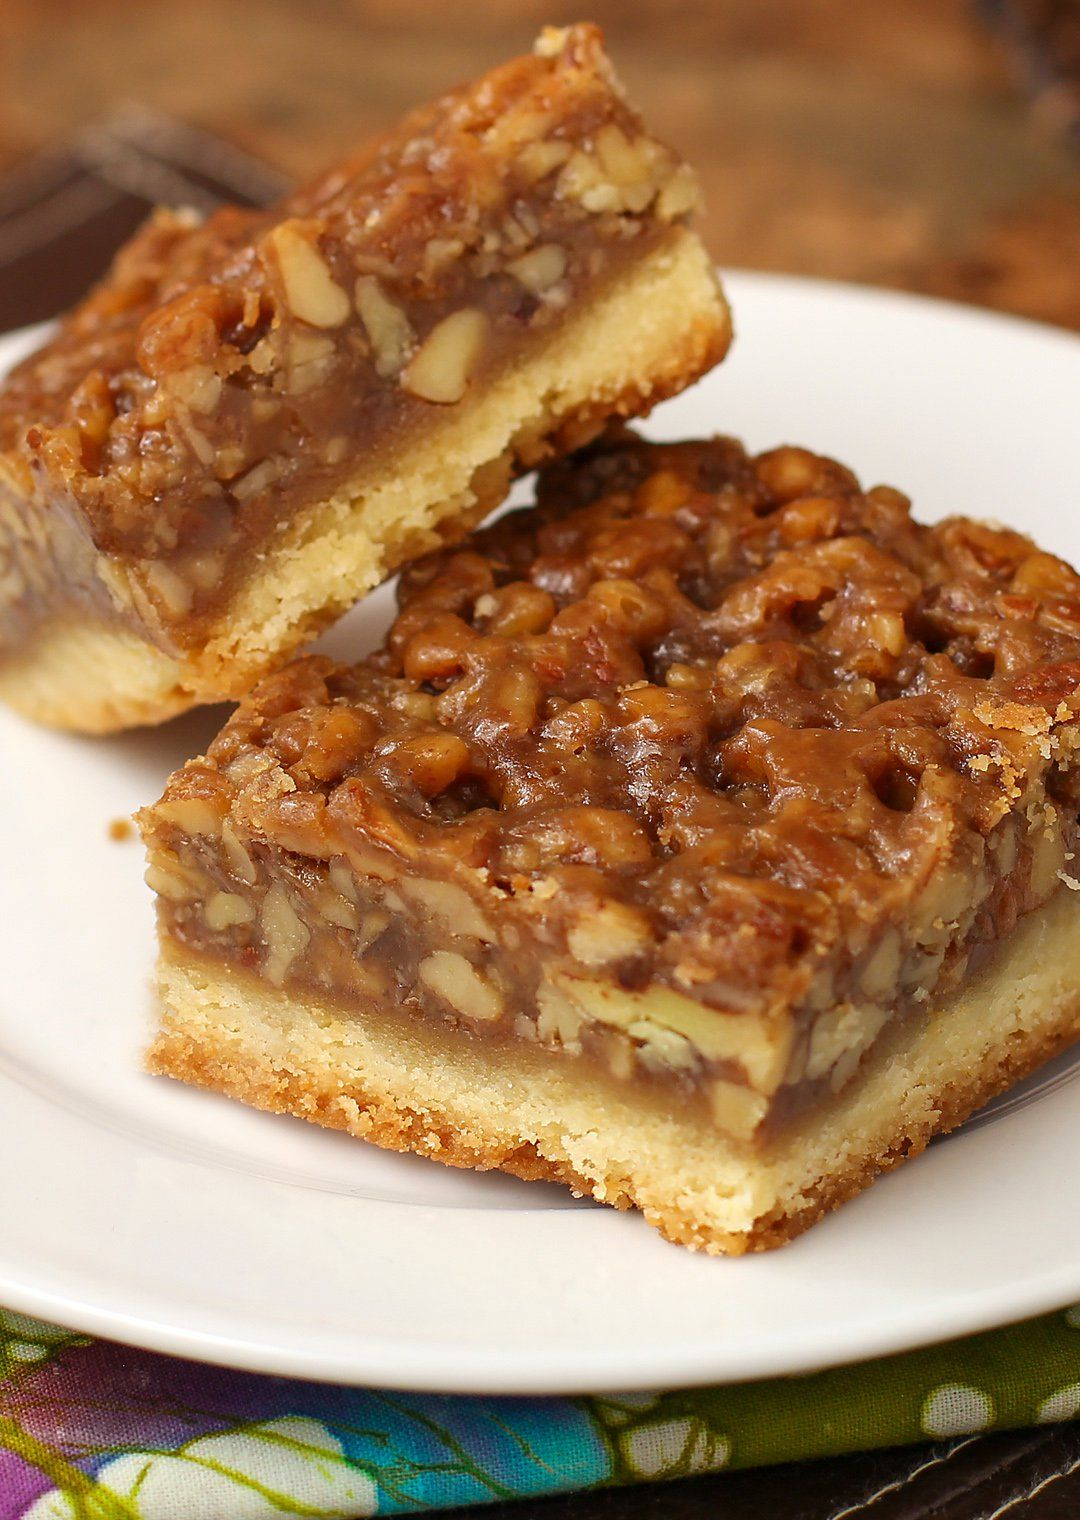 "<a href=""http://www.theslowroasteditalian.com/2013/01/the-best-ever-pecan-bars.html""><strong>The Best Ever Pecan Pie Bars</strong></a> are so good people offer to pay me for them."